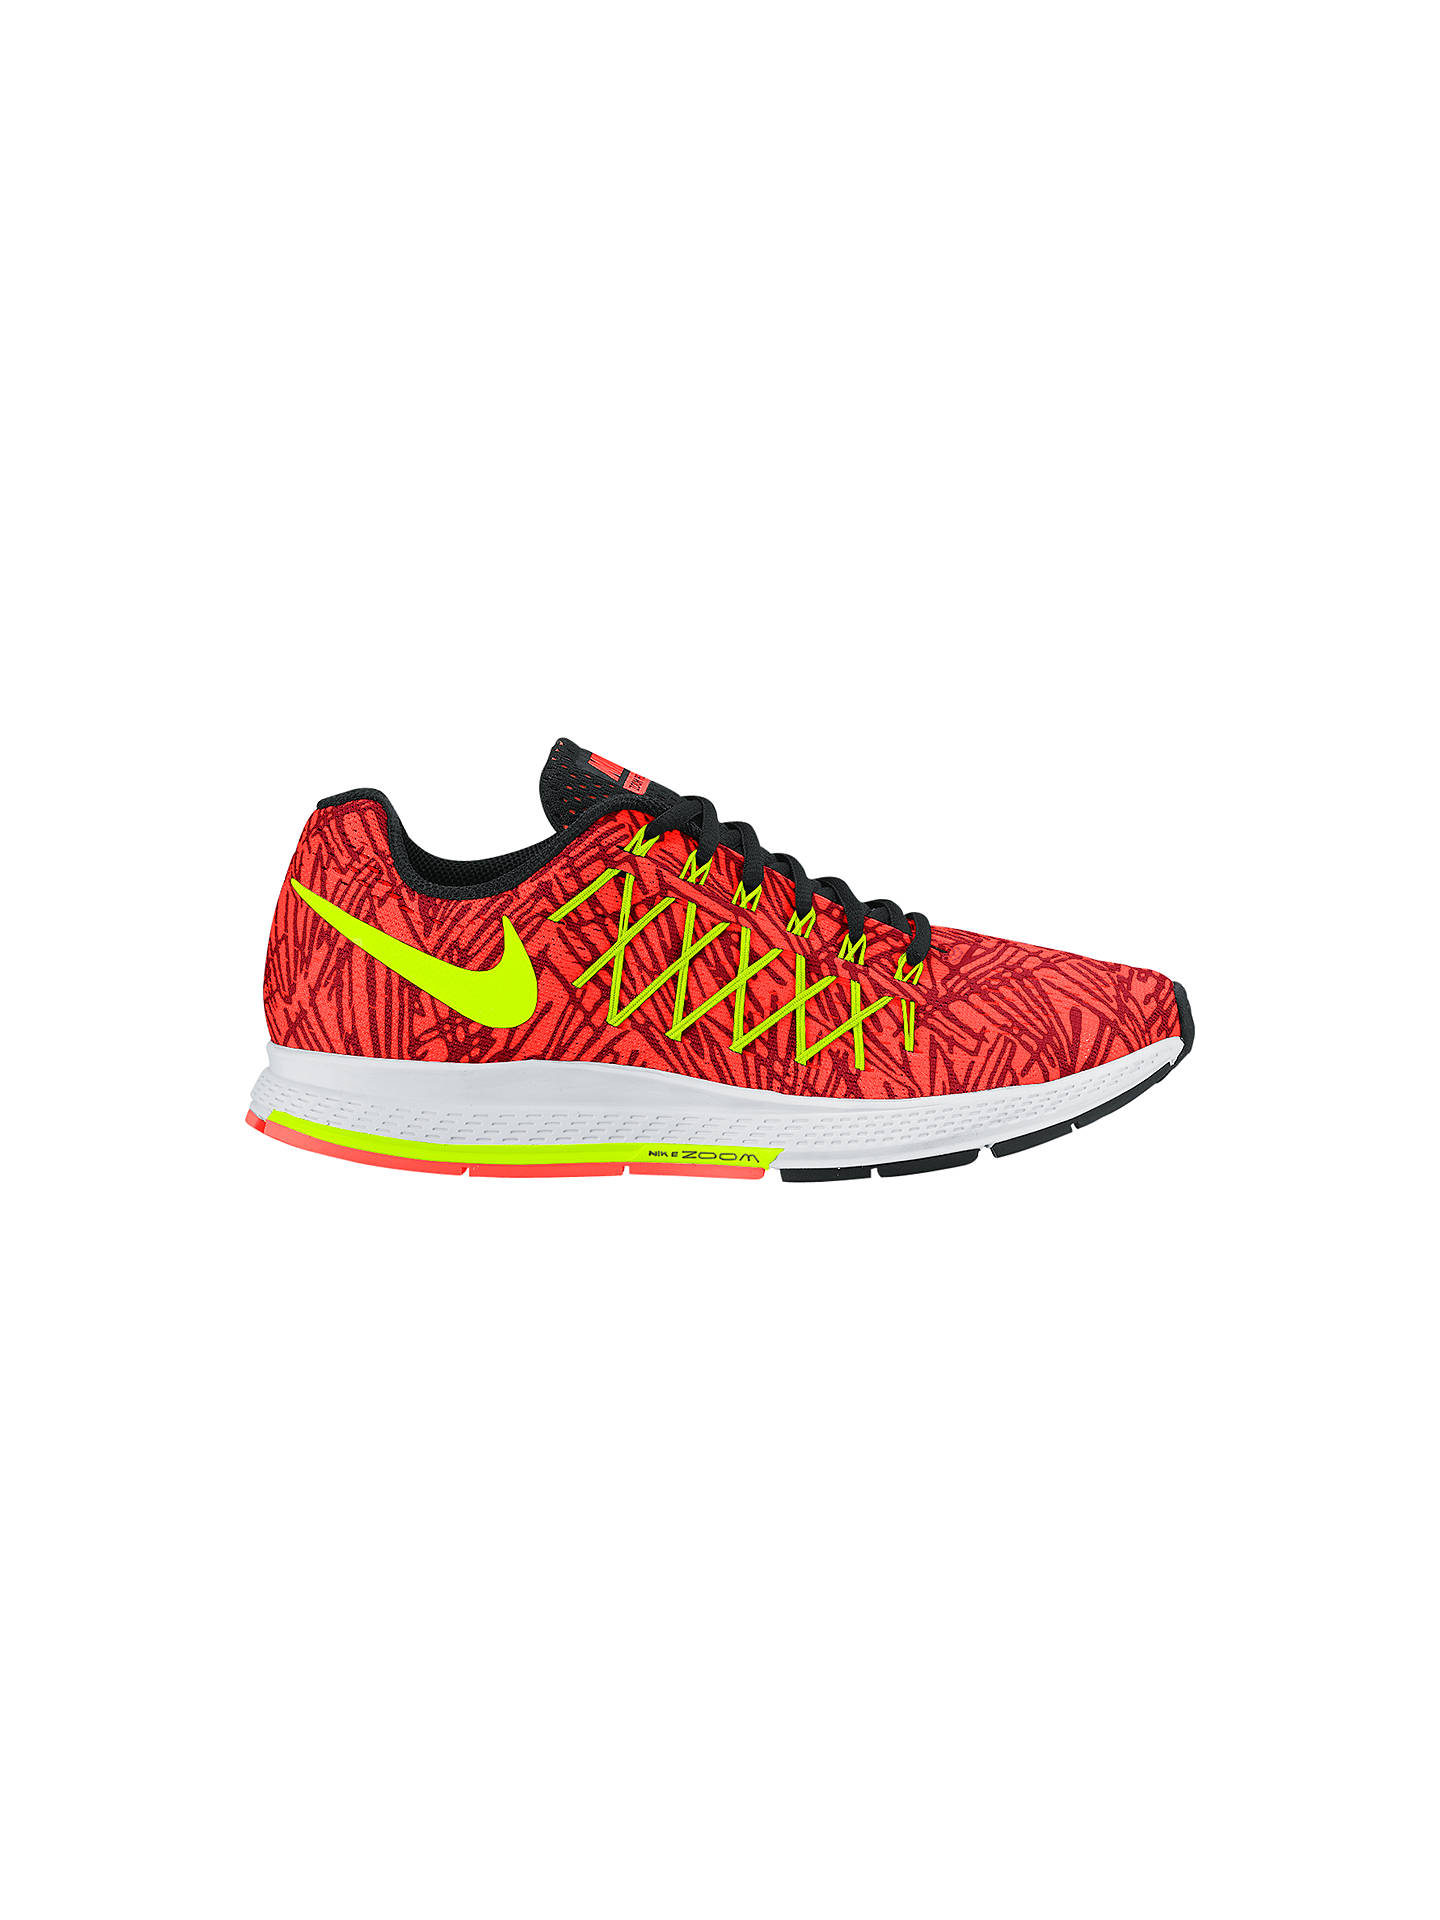 9f50b05a3aed3 ... germany buynike air zoom pegasus 32 womens running shoes orange red 5  online at 979a5 fe016